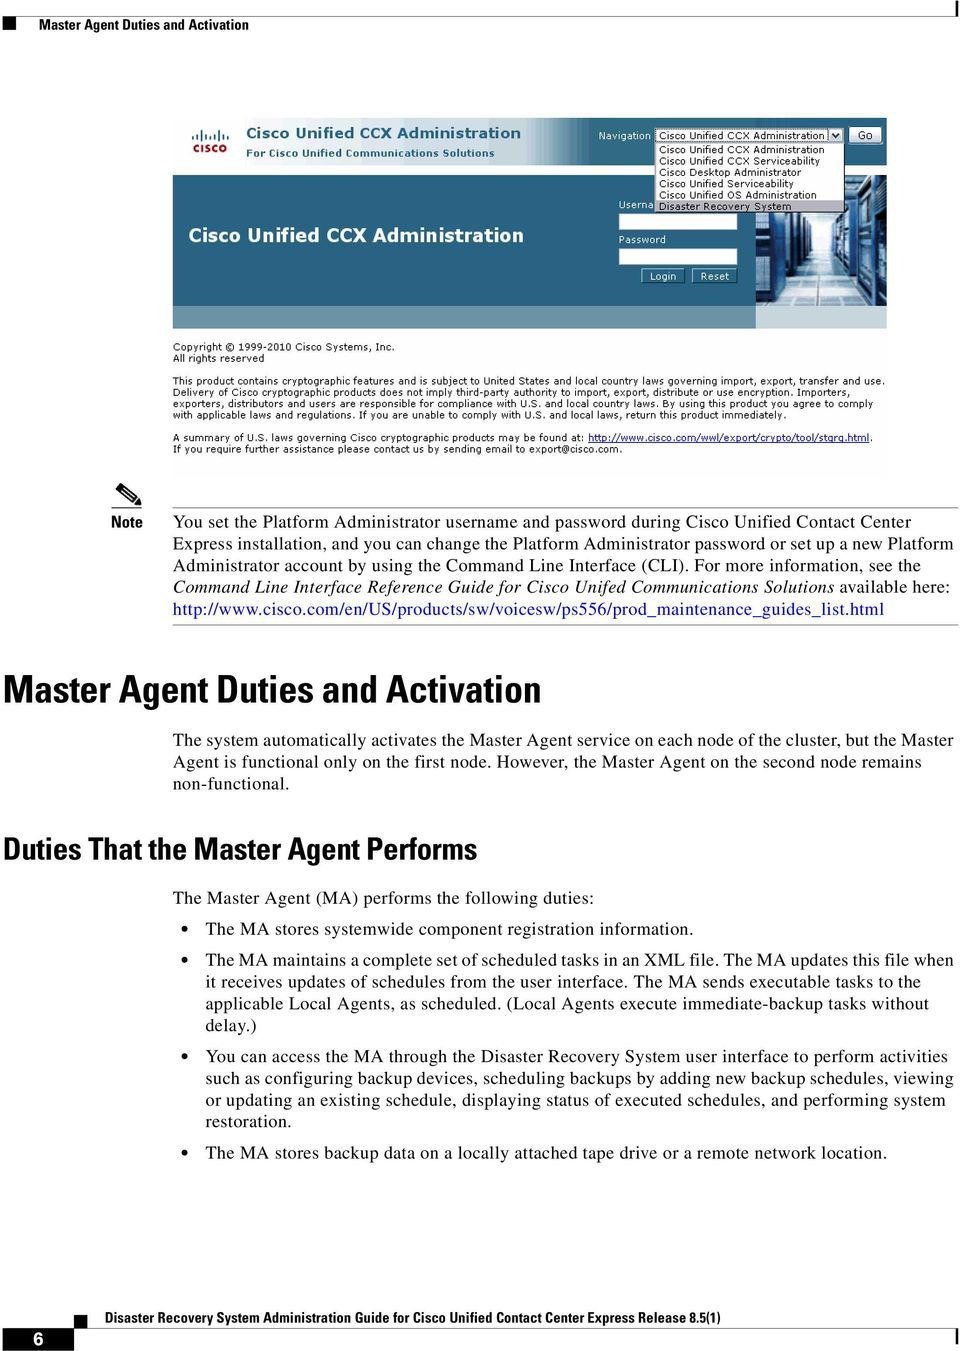 Disaster Recovery System Administration Guide for Cisco